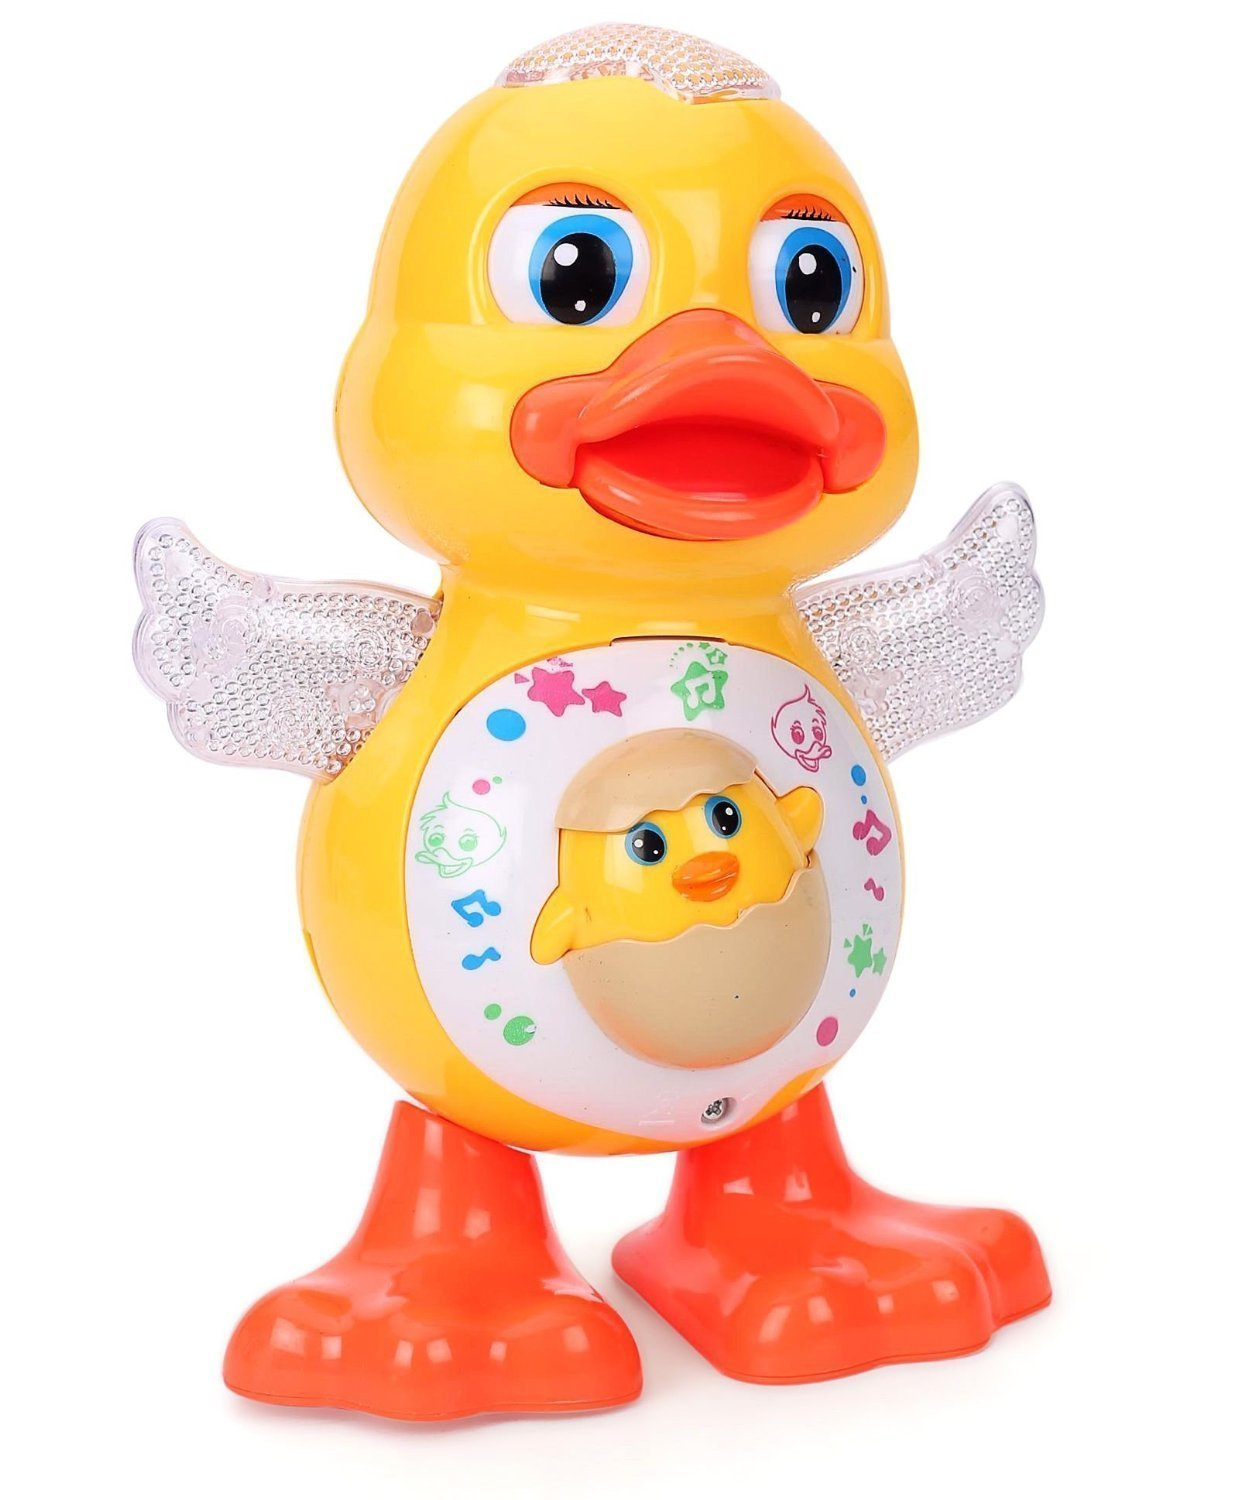 The Toys Sale!! Upto 70% Off On Toys By Amazon | Toyshine Dancing Duck with Music Flashing Lights and Real Dancing Action, Multi Color @ Rs.319